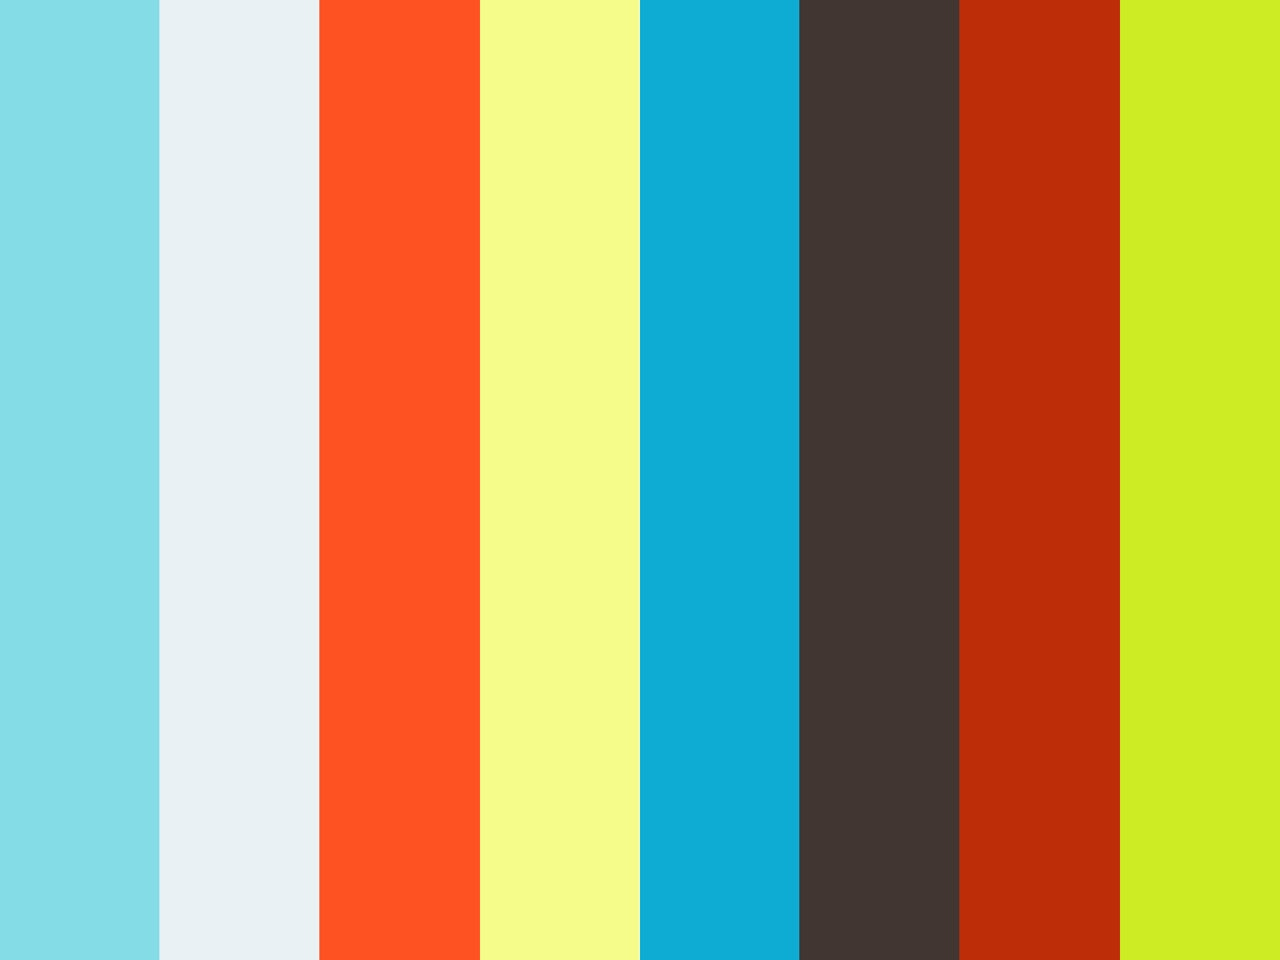 Eregulations b nin 23 07 2012 m adam ahanchede for Ministere du commerce exterieur